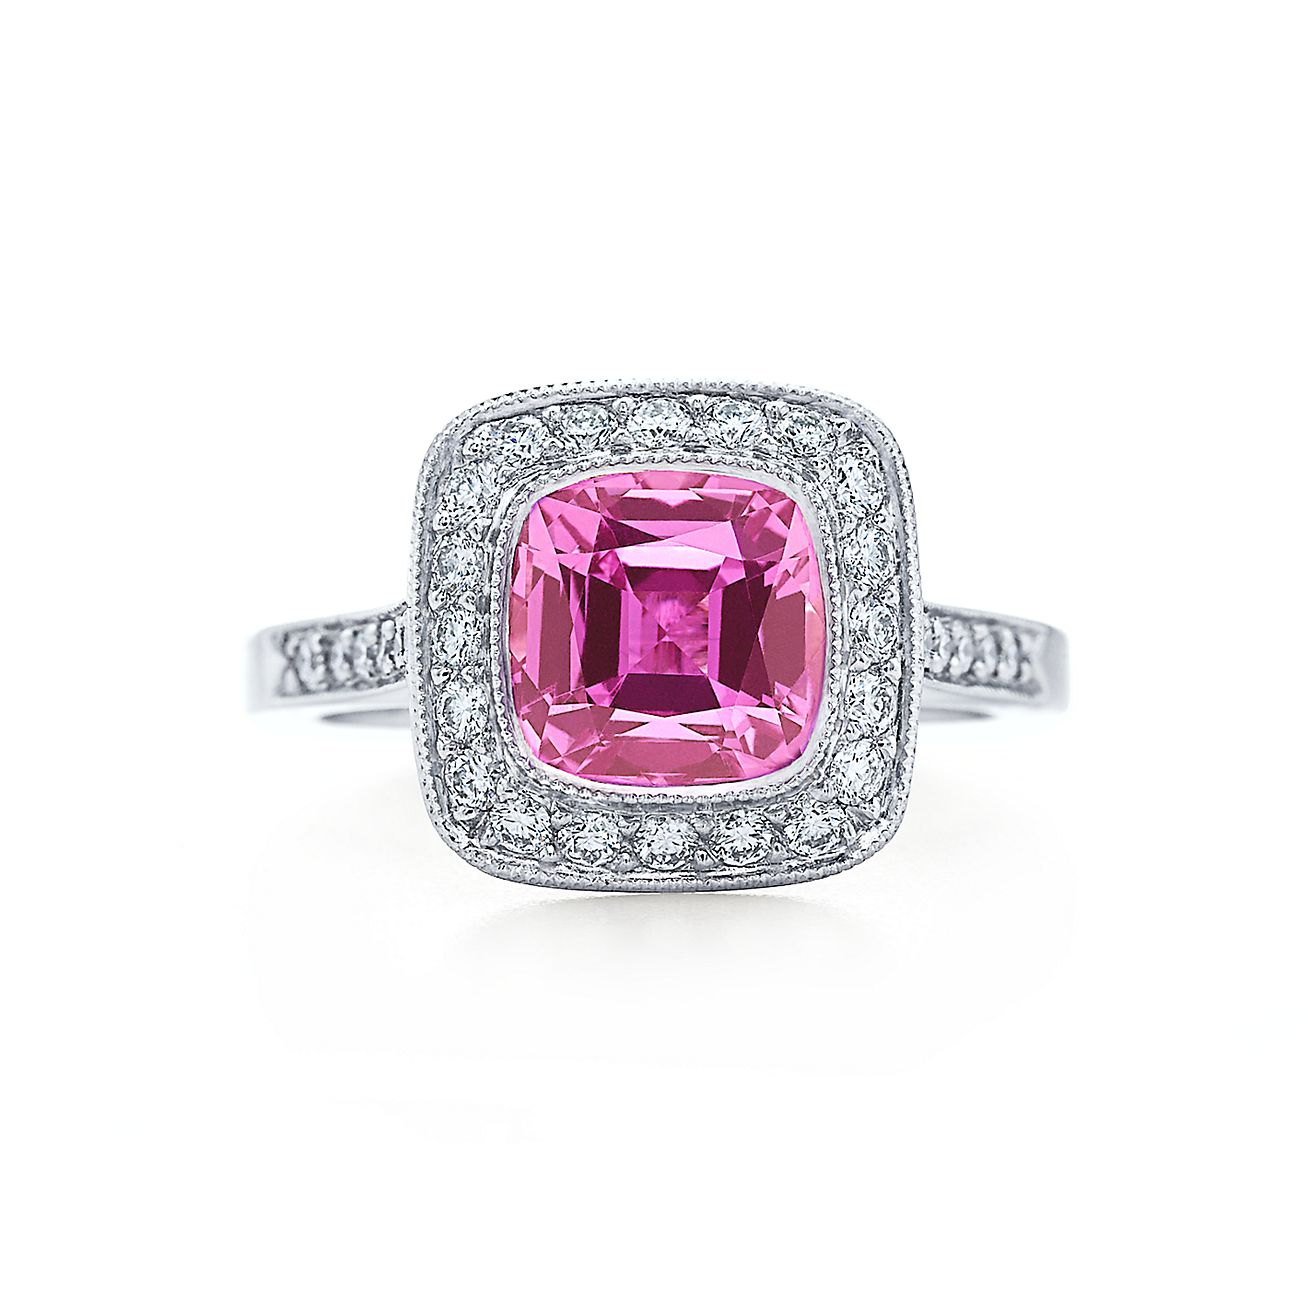 Tiffany Sapphire Engagement Ring; Tiffany Legacy Collection™ Pink Sapphire  Ring